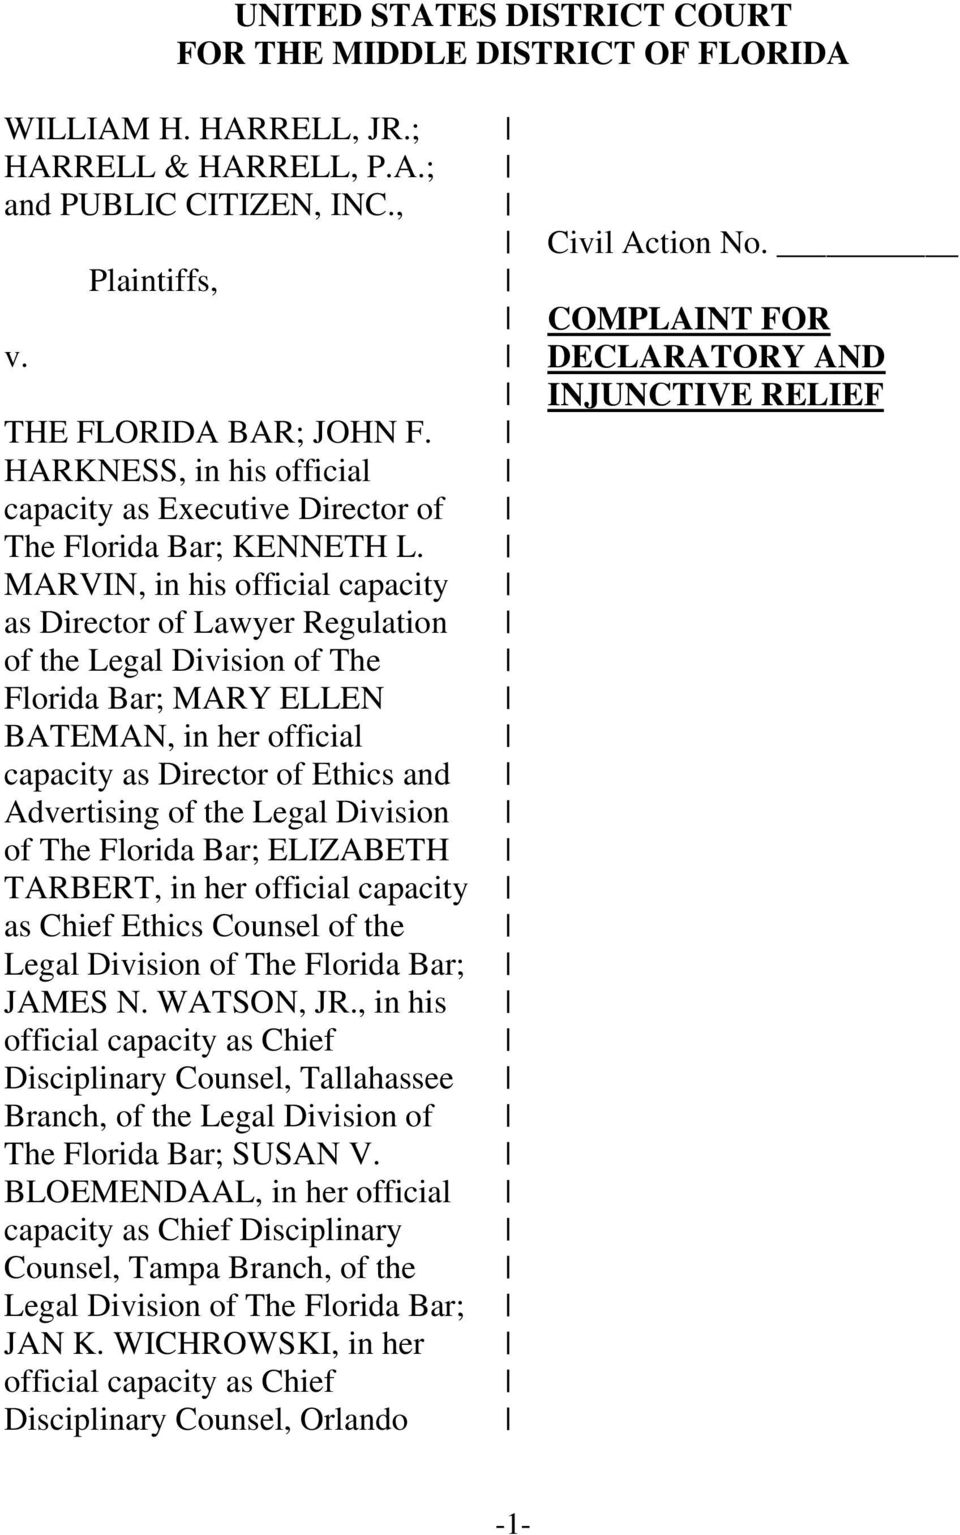 MARVIN, in his official capacity as Director of Lawyer Regulation of the Legal Division of The Florida Bar; MARY ELLEN BATEMAN, in her official capacity as Director of Ethics and Advertising of the